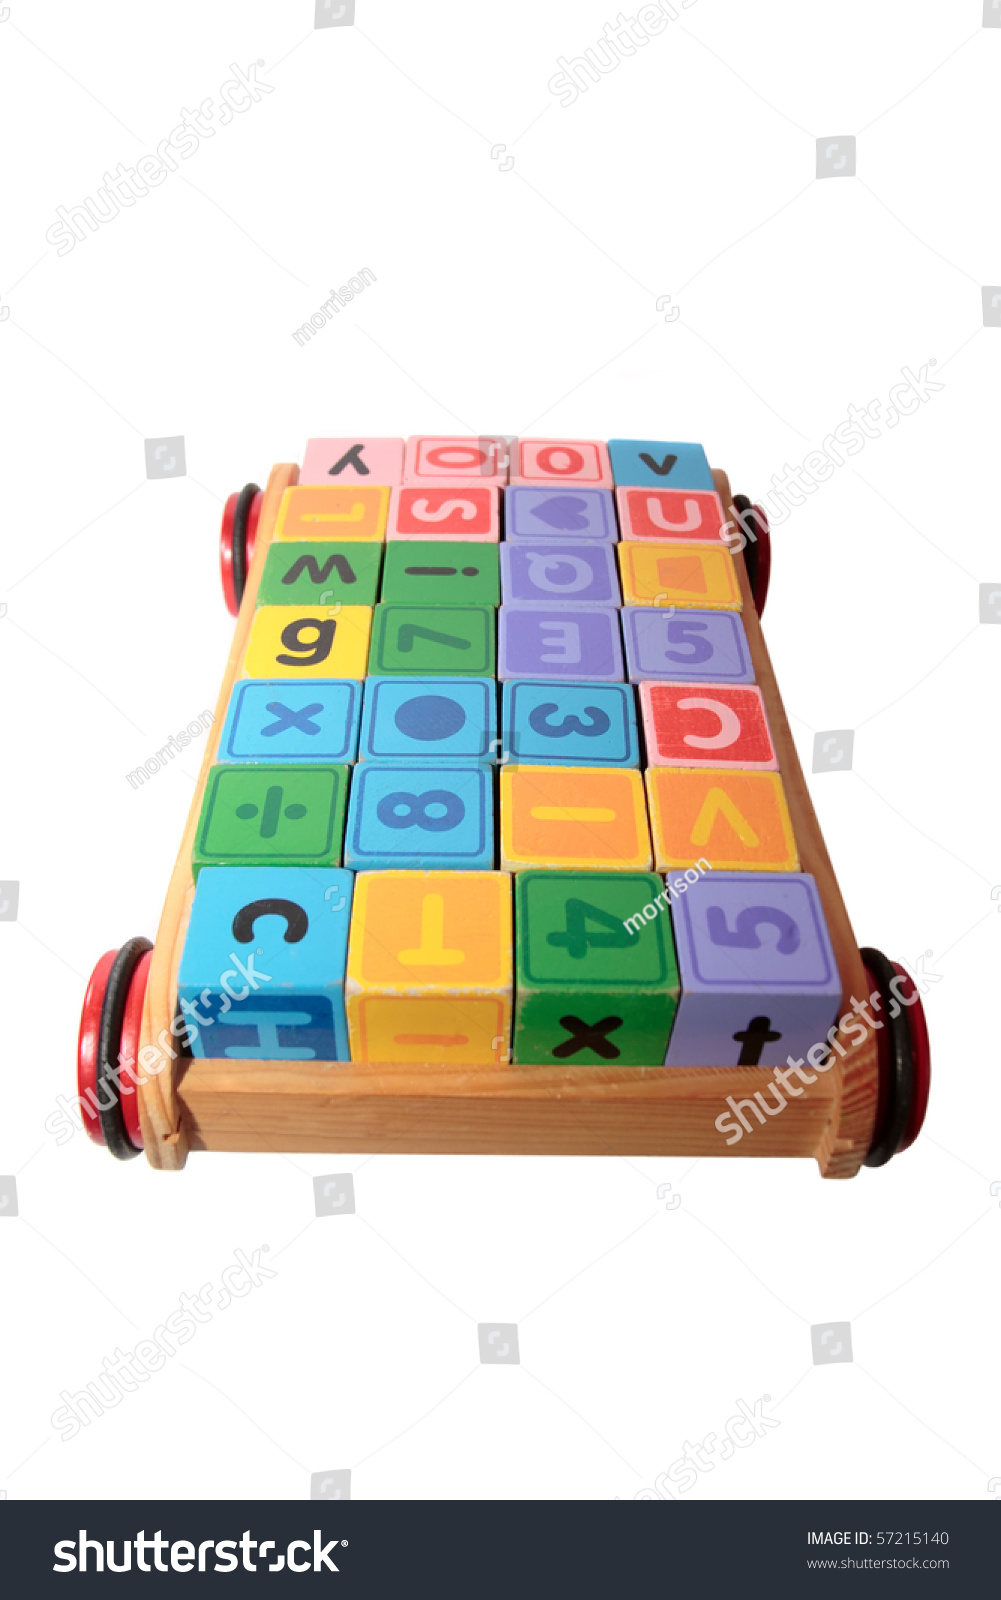 children toy letter building blocks all together in a toy cart isolated on white background #57215140